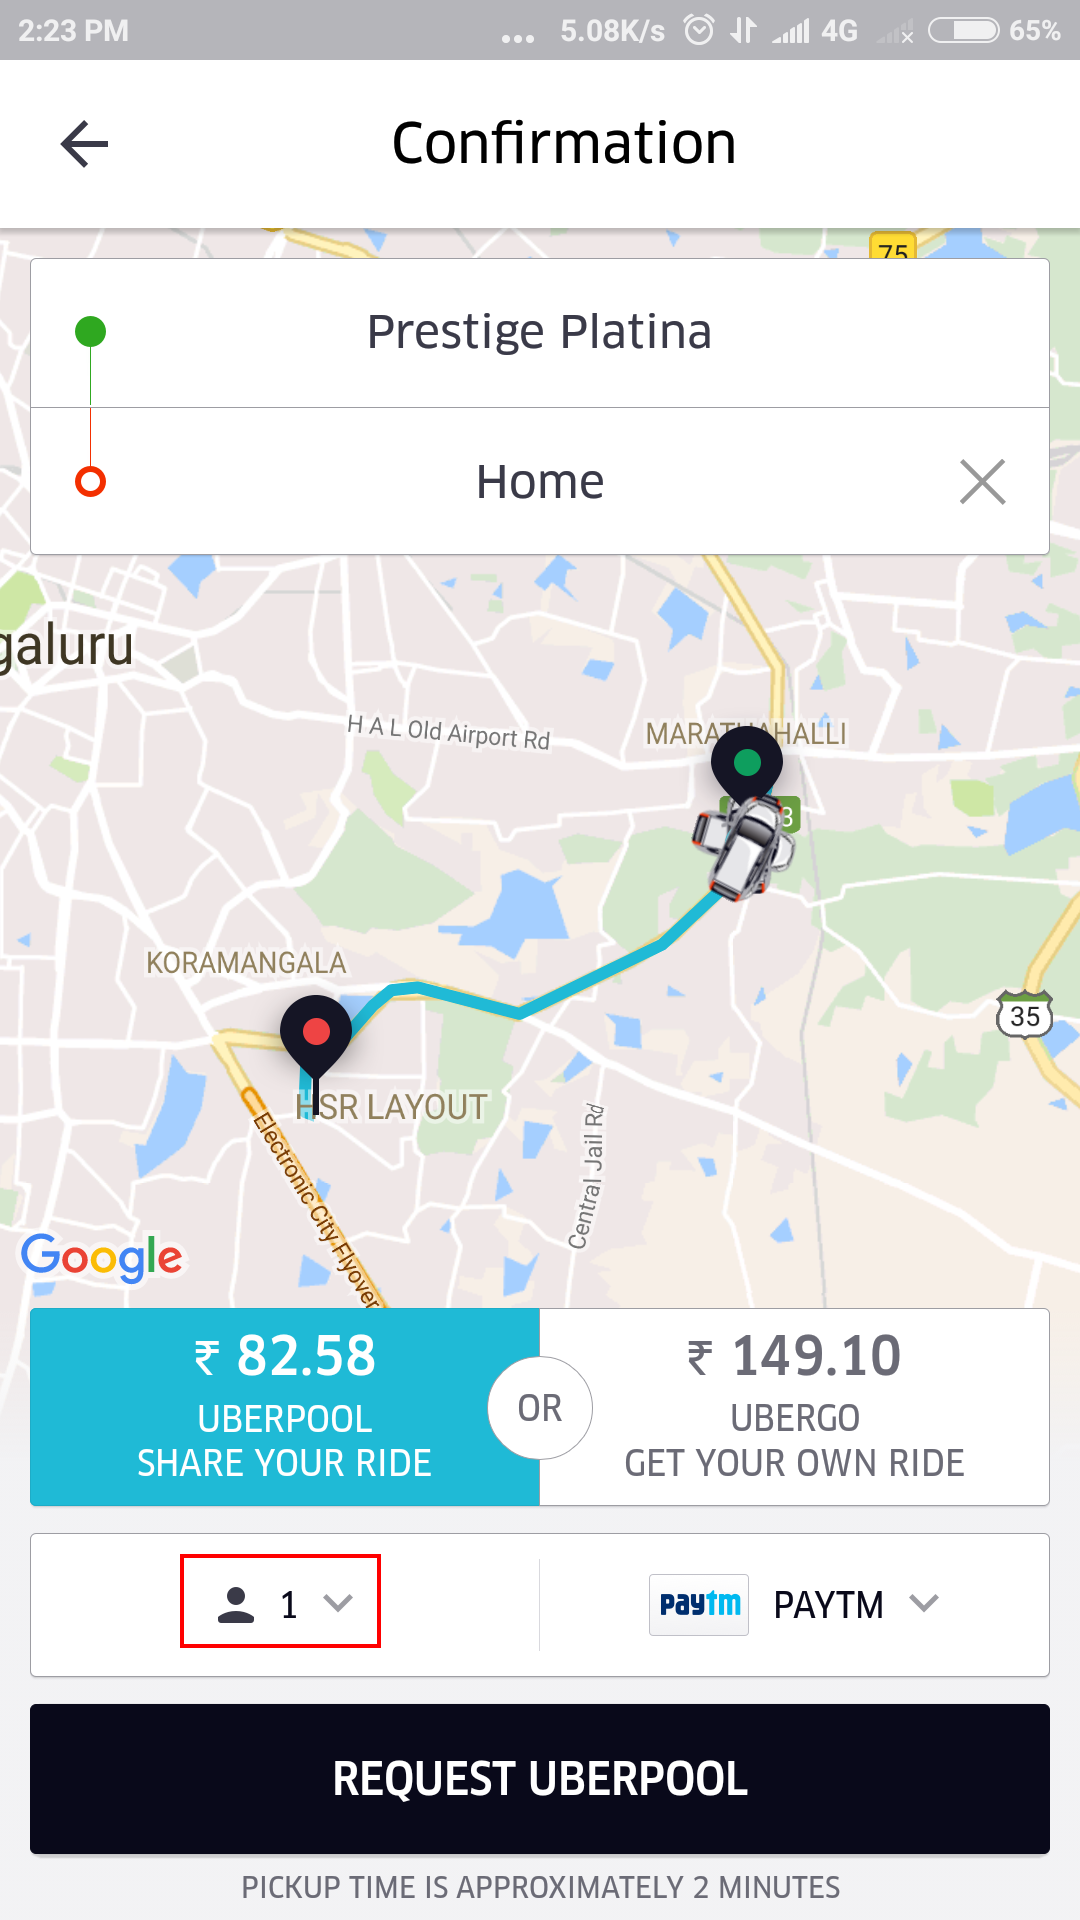 What are some hacks for Uber in India? - Quora